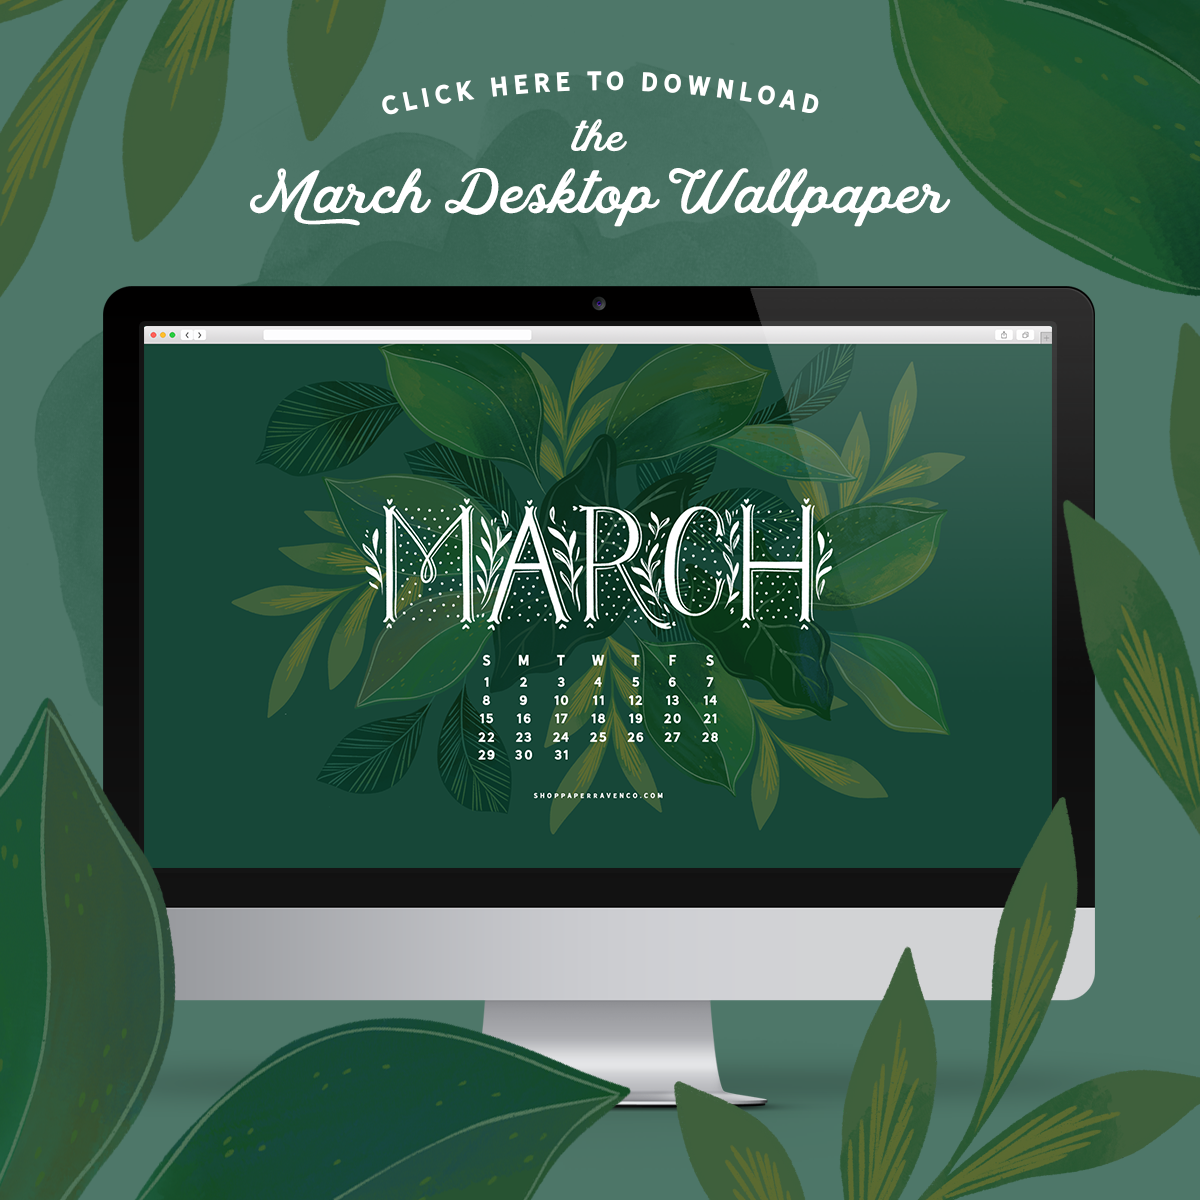 March 2020 Desktop Illustrated Wallpaper by Paper Raven Co. | www.ShopPaperRavenCo.com | #dressyourtech #desktopwallpaper #desktopdownload